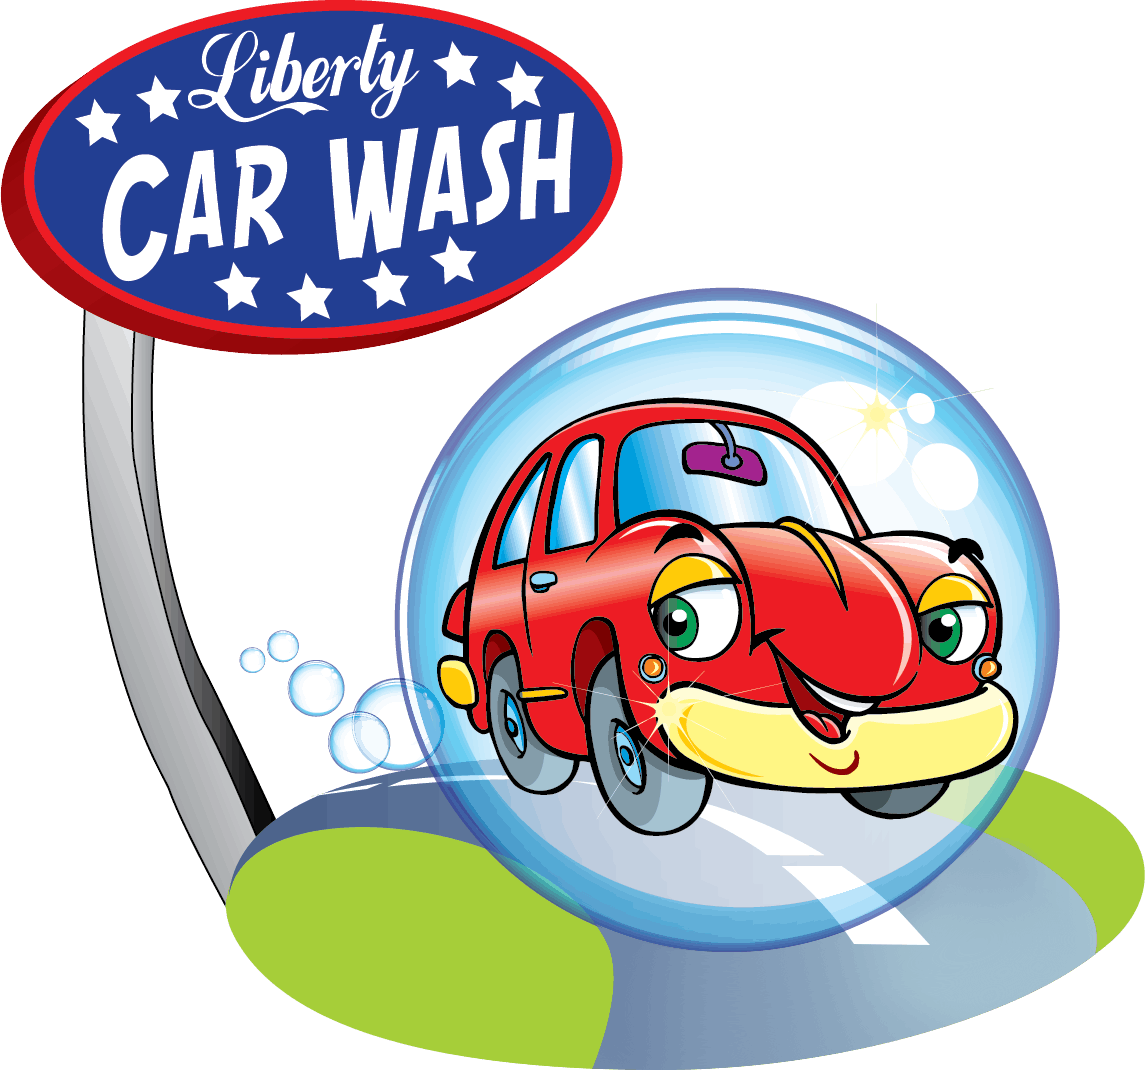 Car wax clipart image freeuse stock Liberty Car Wash | Florida City, Florida Car Wash image freeuse stock